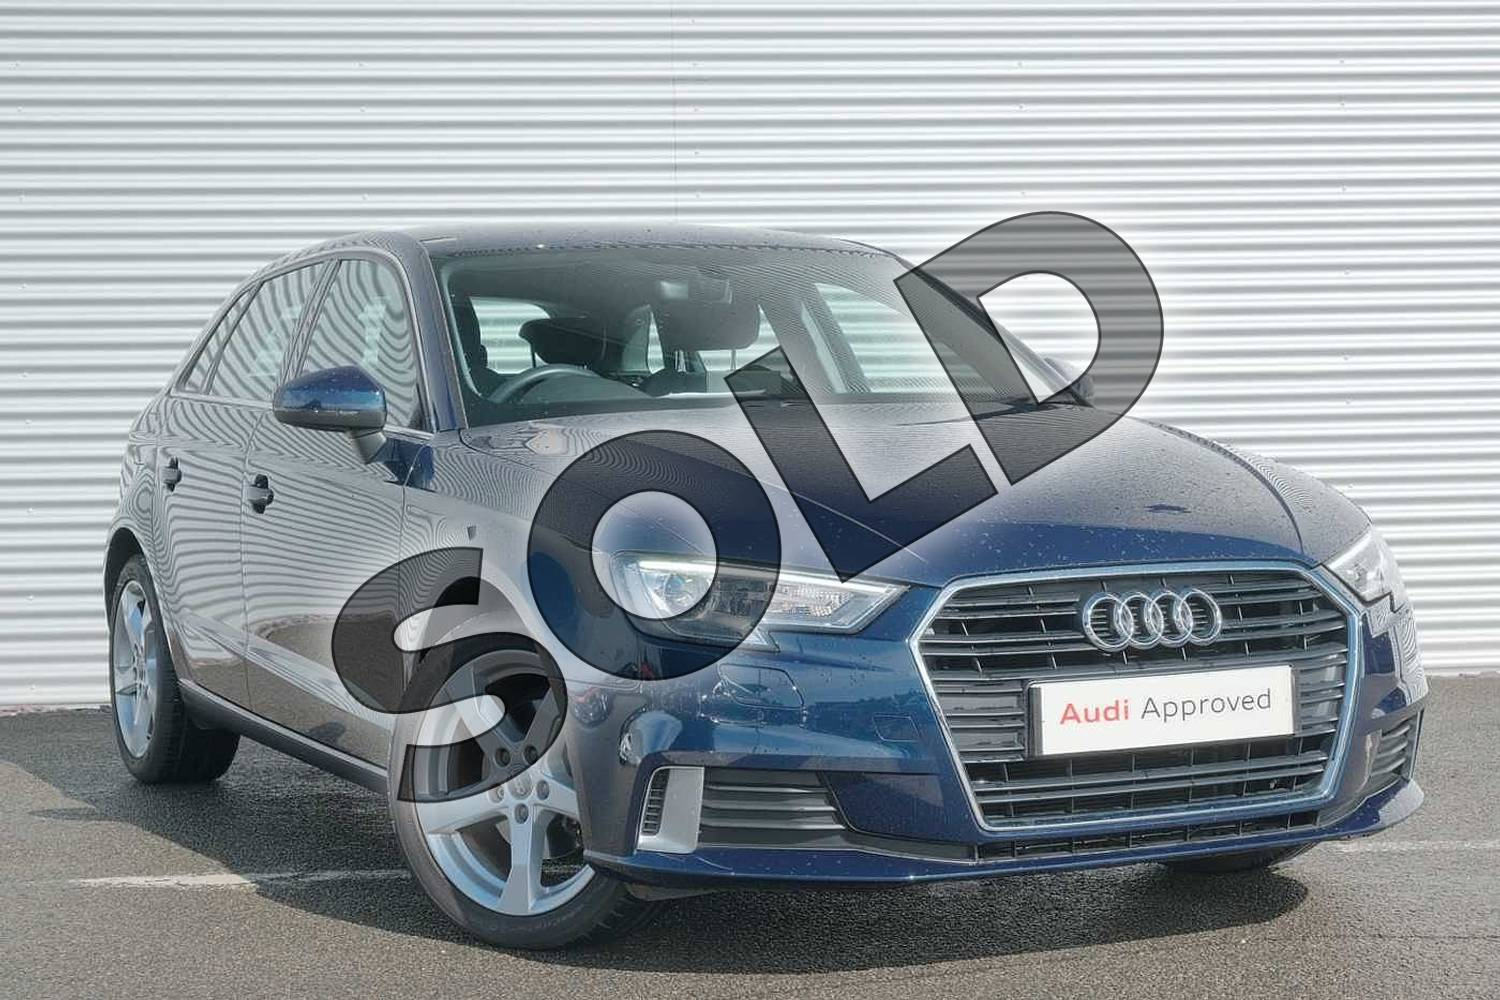 2017 Audi A3 Sportback 1.0 TFSI Sport 5dr in Cosmos blue, metallic at Coventry Audi